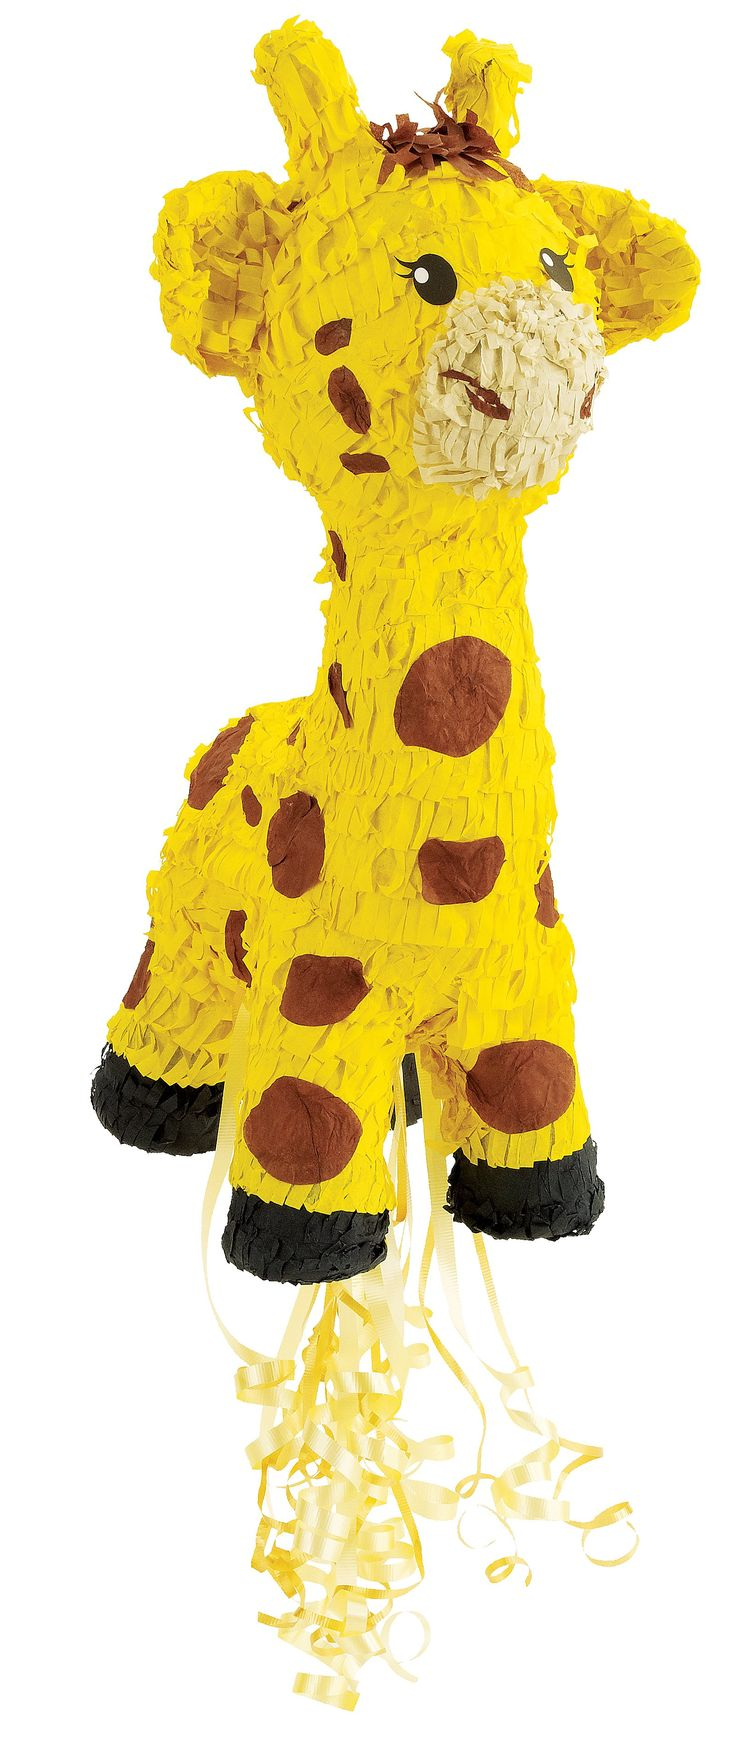 "Giraffe 21"" ""Pull-String"" Pinata-whew - somehow hitting my favorite animal with a stick until it breaks open just seems completly wrong!"